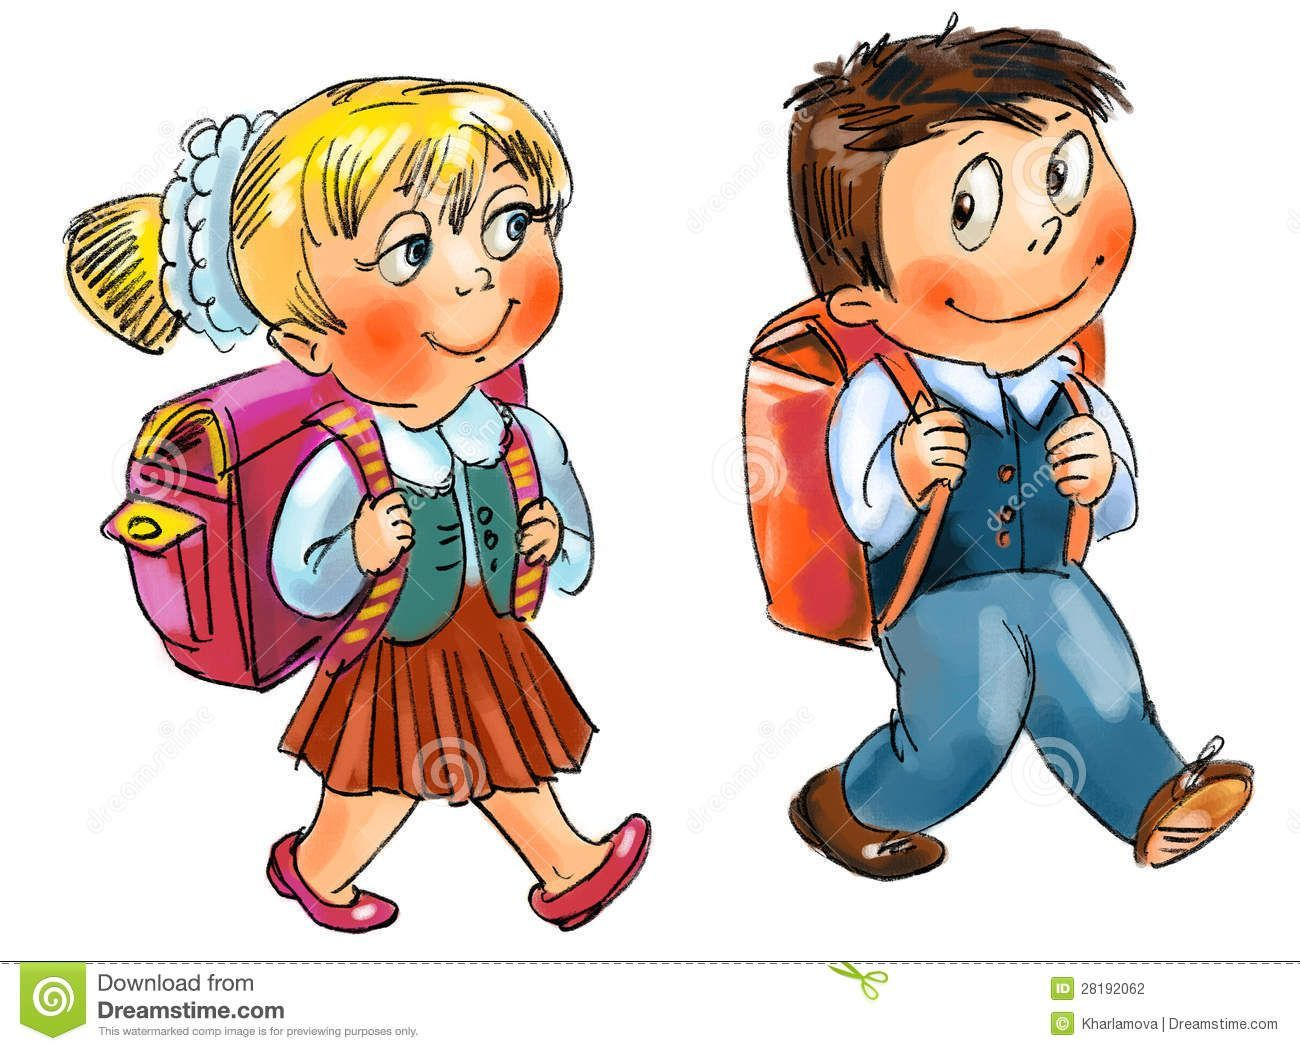 Student going to school clipart clip free stock Student going to school clipart 5 » Clipart Portal clip free stock